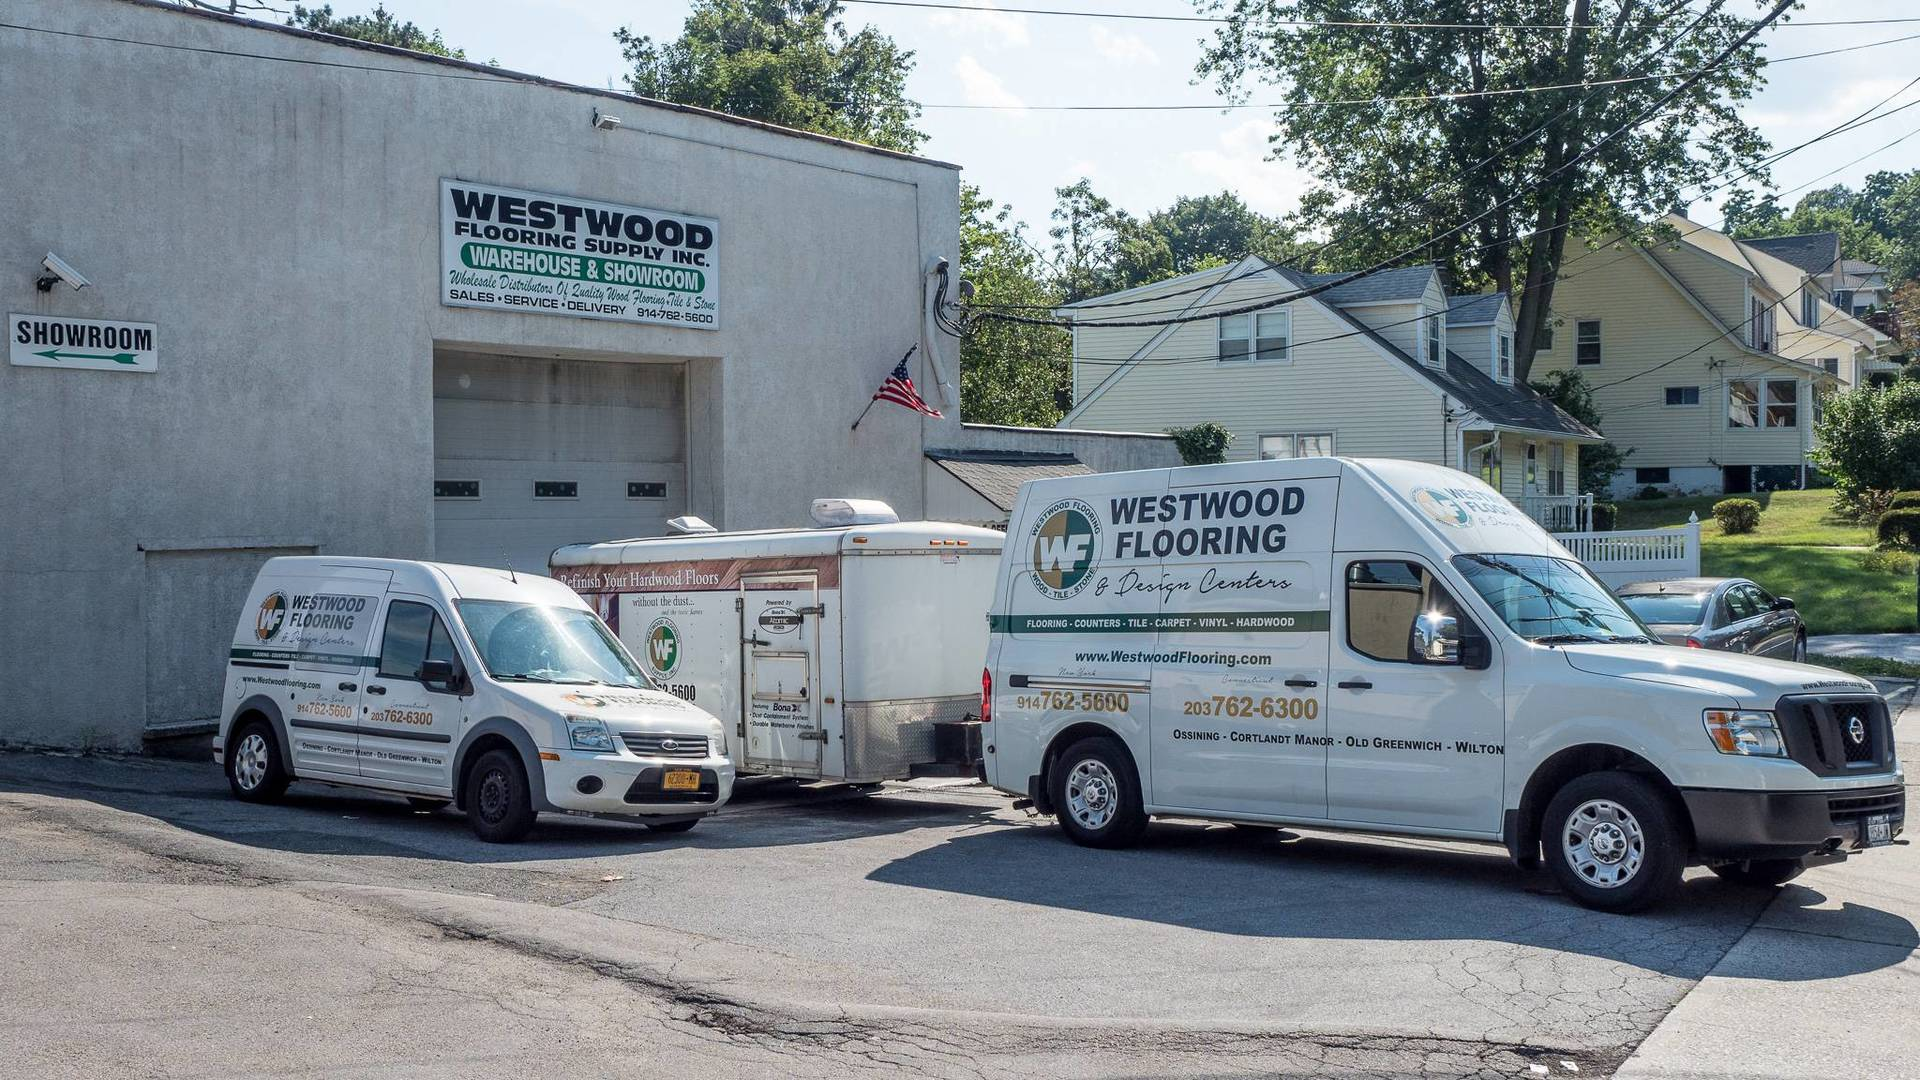 About Westwood Flooring Supply